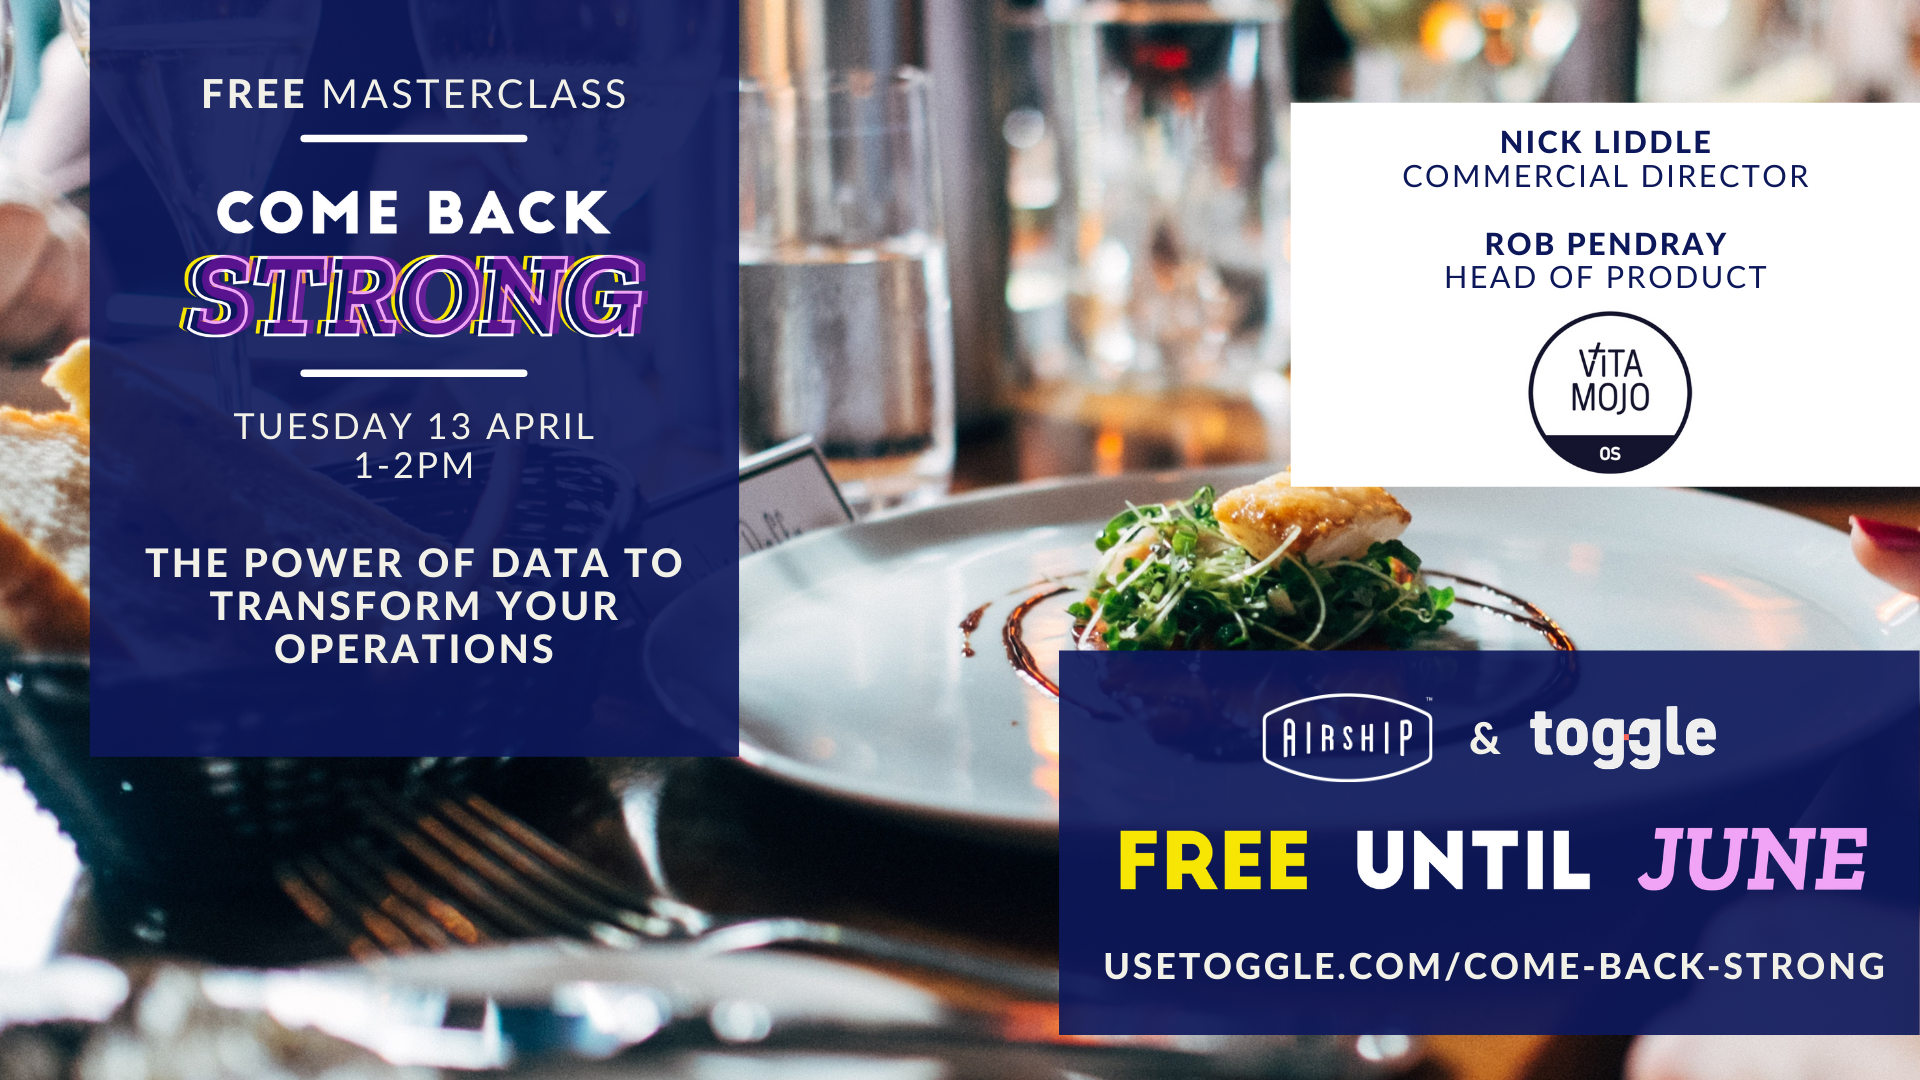 #ComeBackStrong Masterclass: The power of data to transform your operations